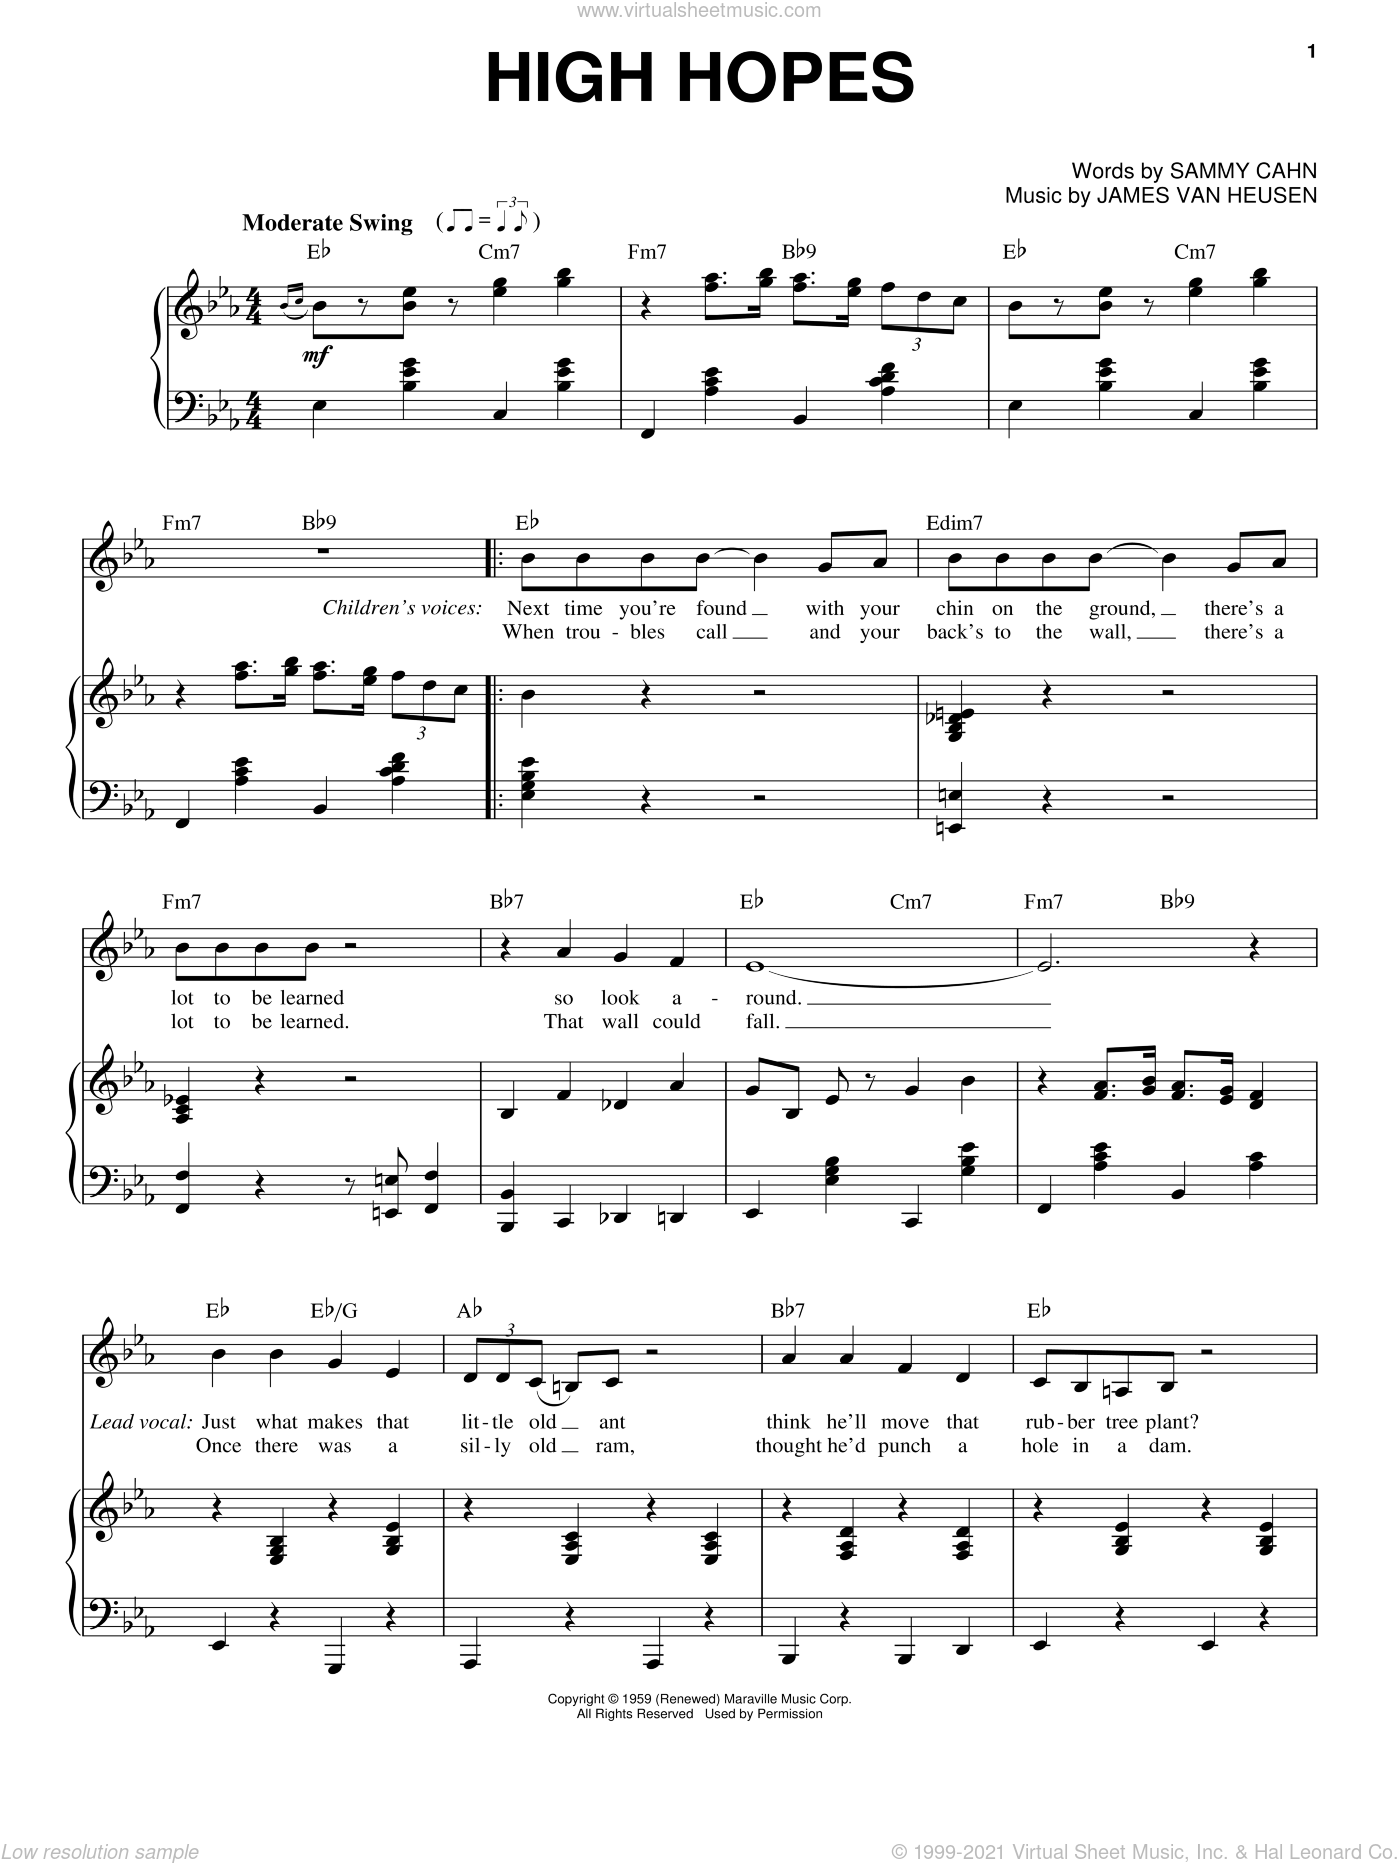 High Hopes sheet music for voice and piano by Frank Sinatra, Jimmy van Heusen and Sammy Cahn, intermediate skill level